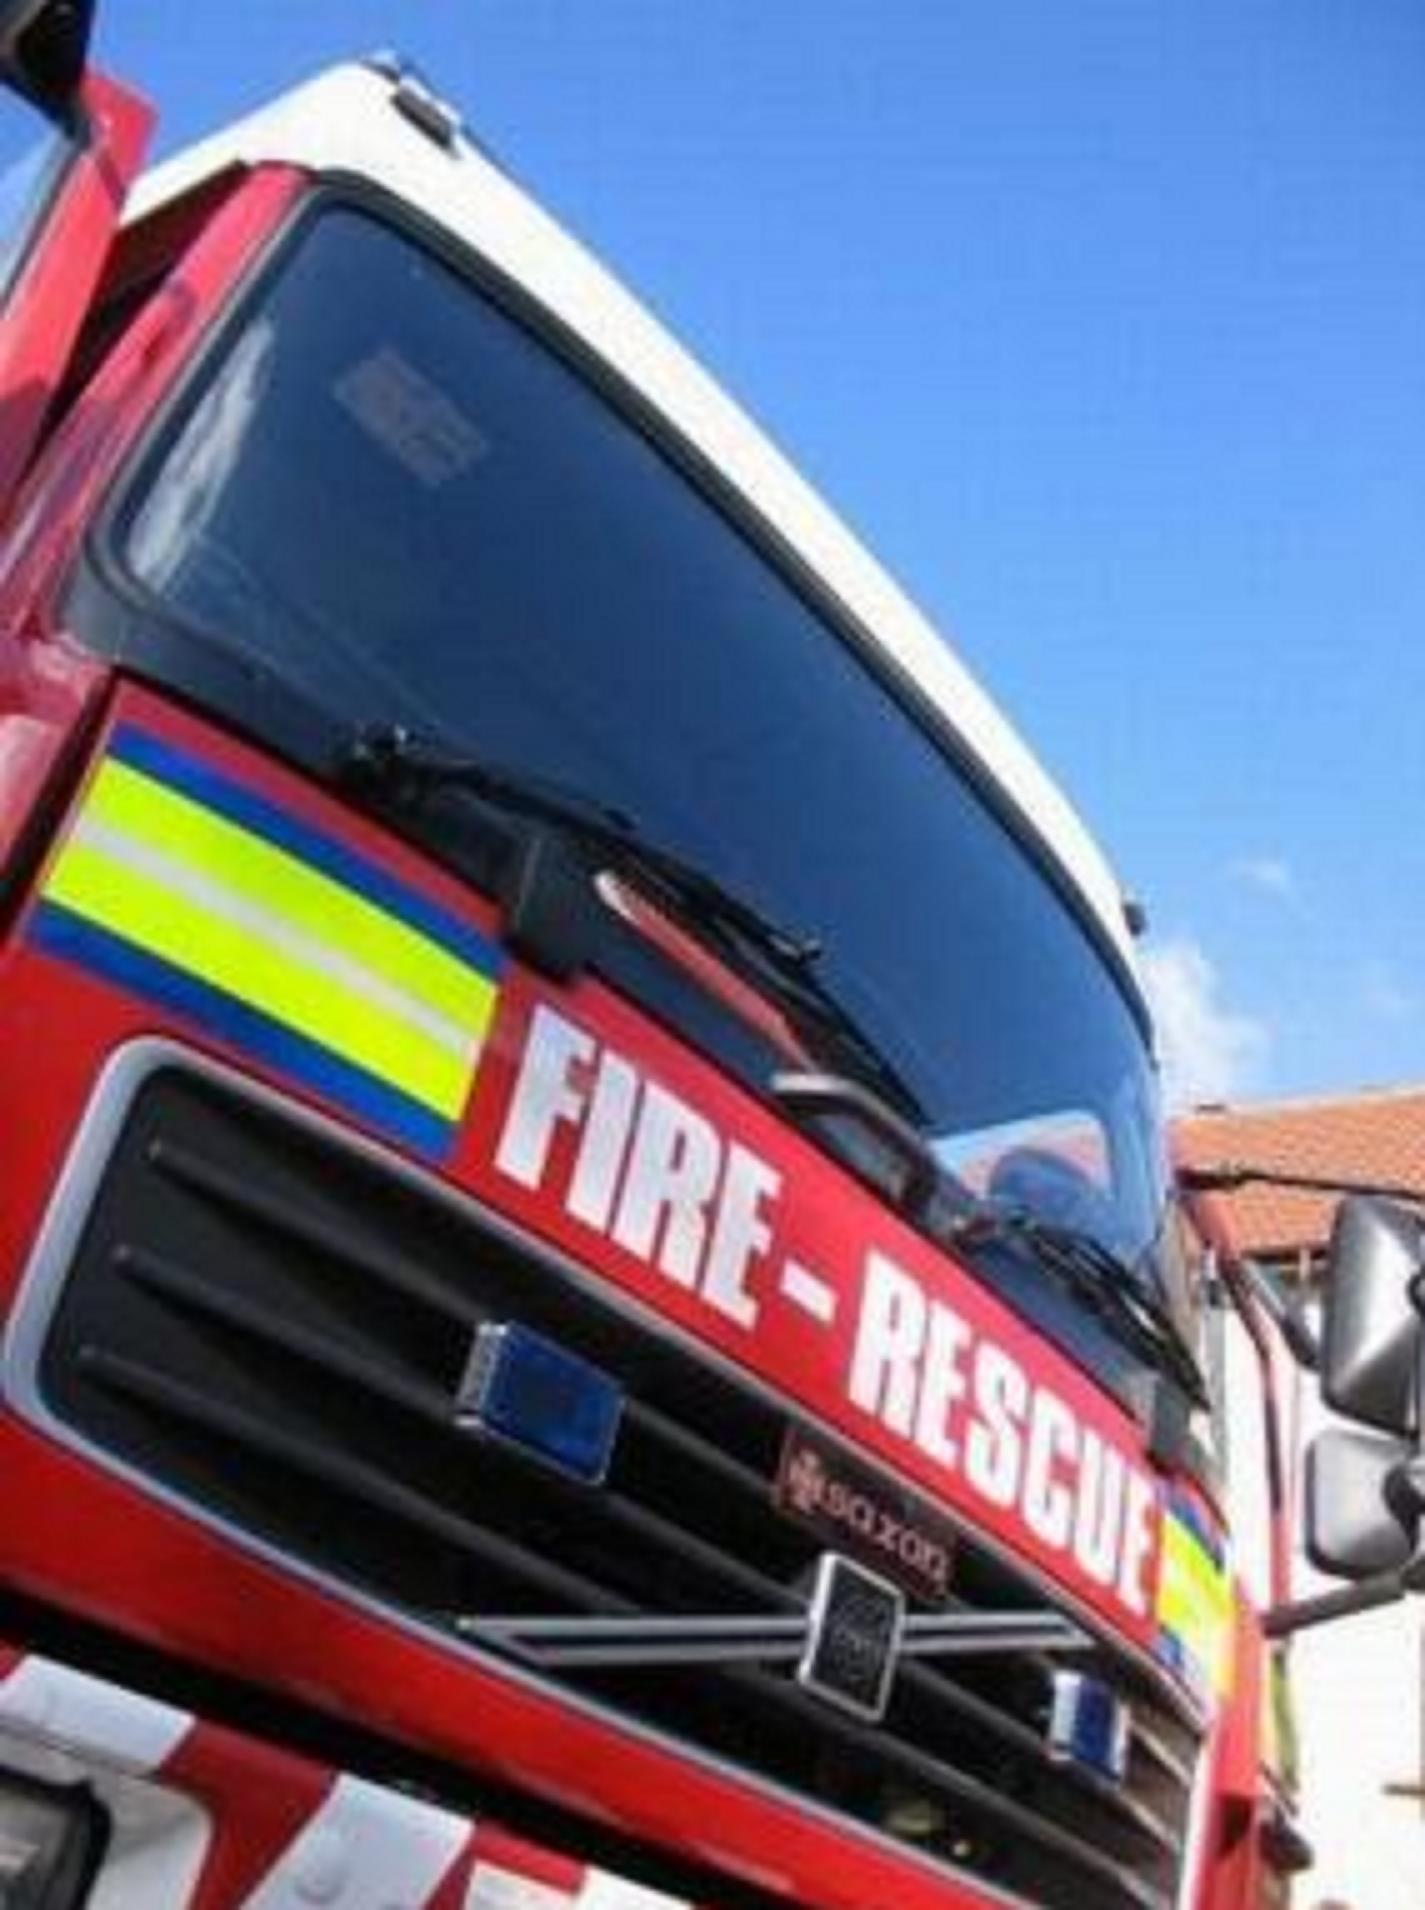 Extra care urged during fire strike this Saturday